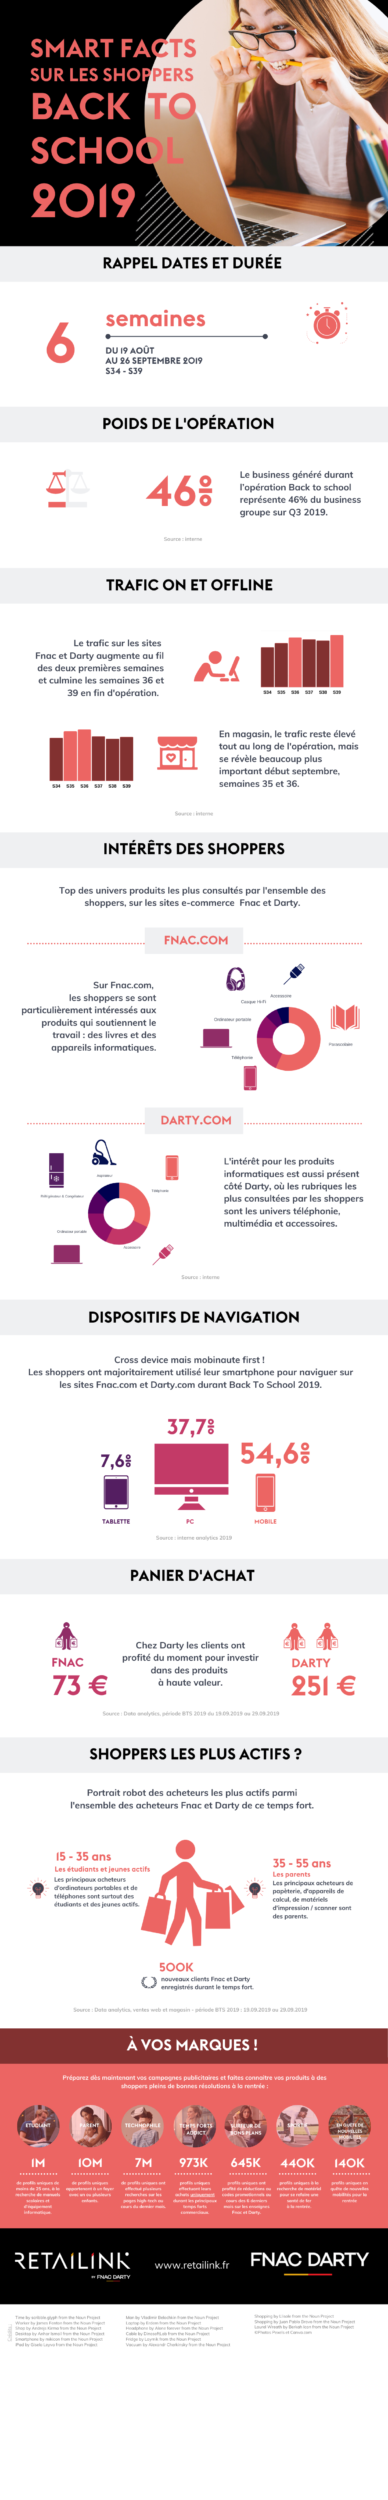 Infographie Back To School chez Fnac Darty by Retailink